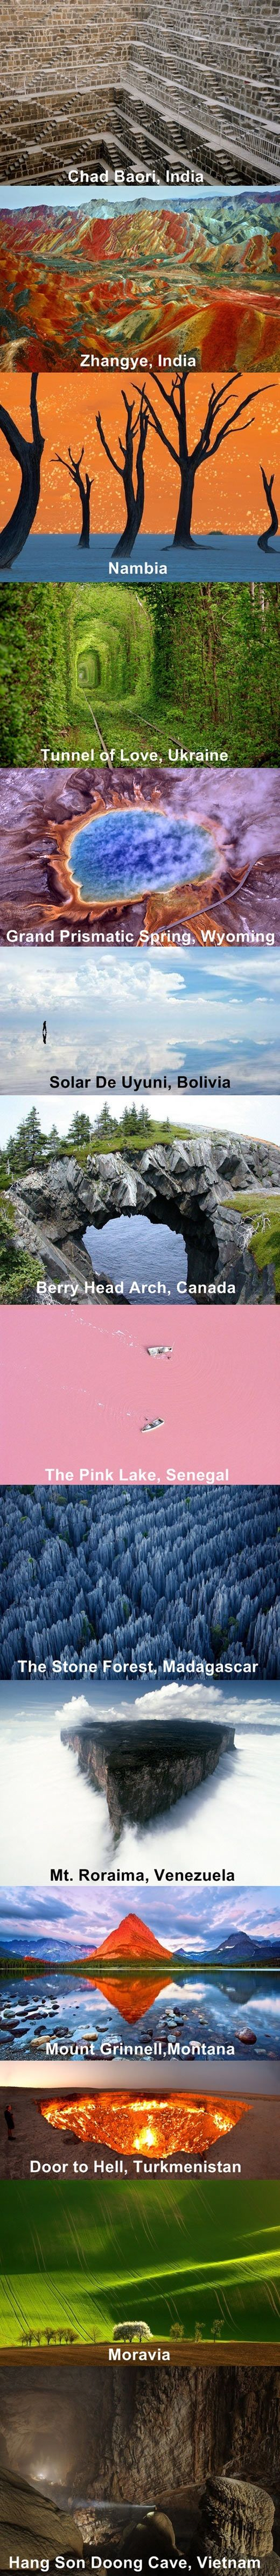 Places on my bucket list.